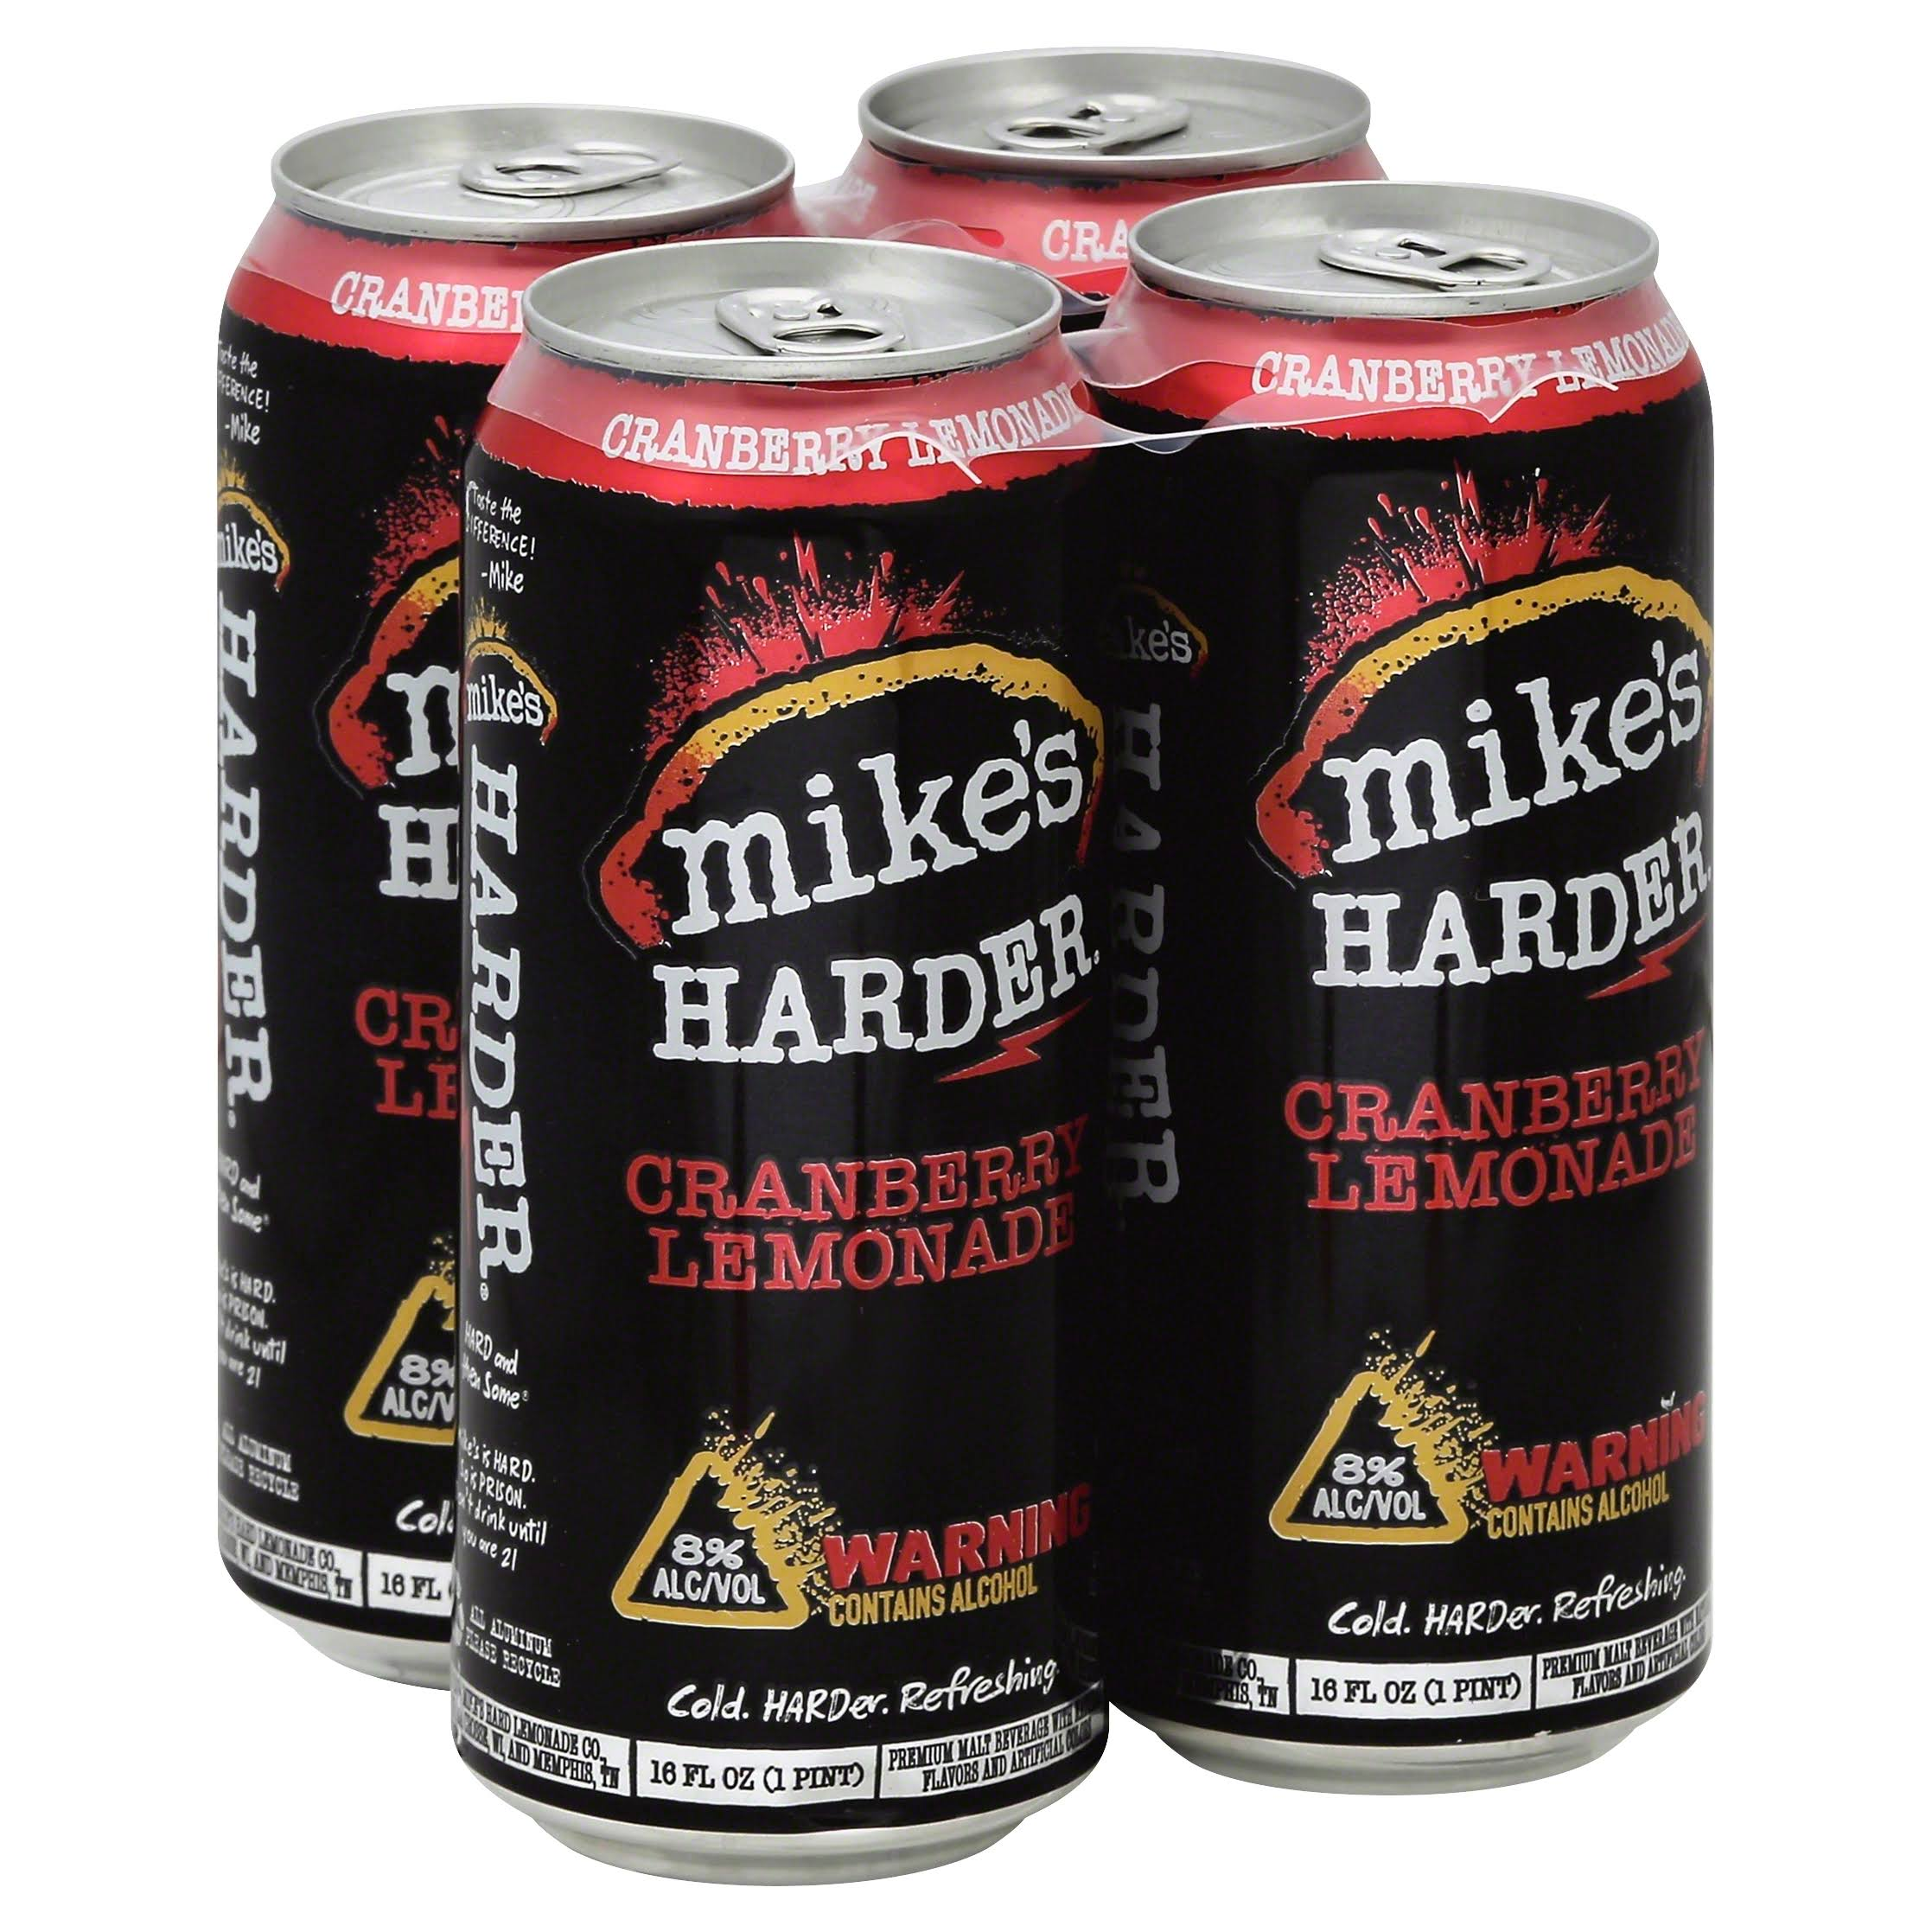 Mike's Harder Drink - Cranberry Lemonade